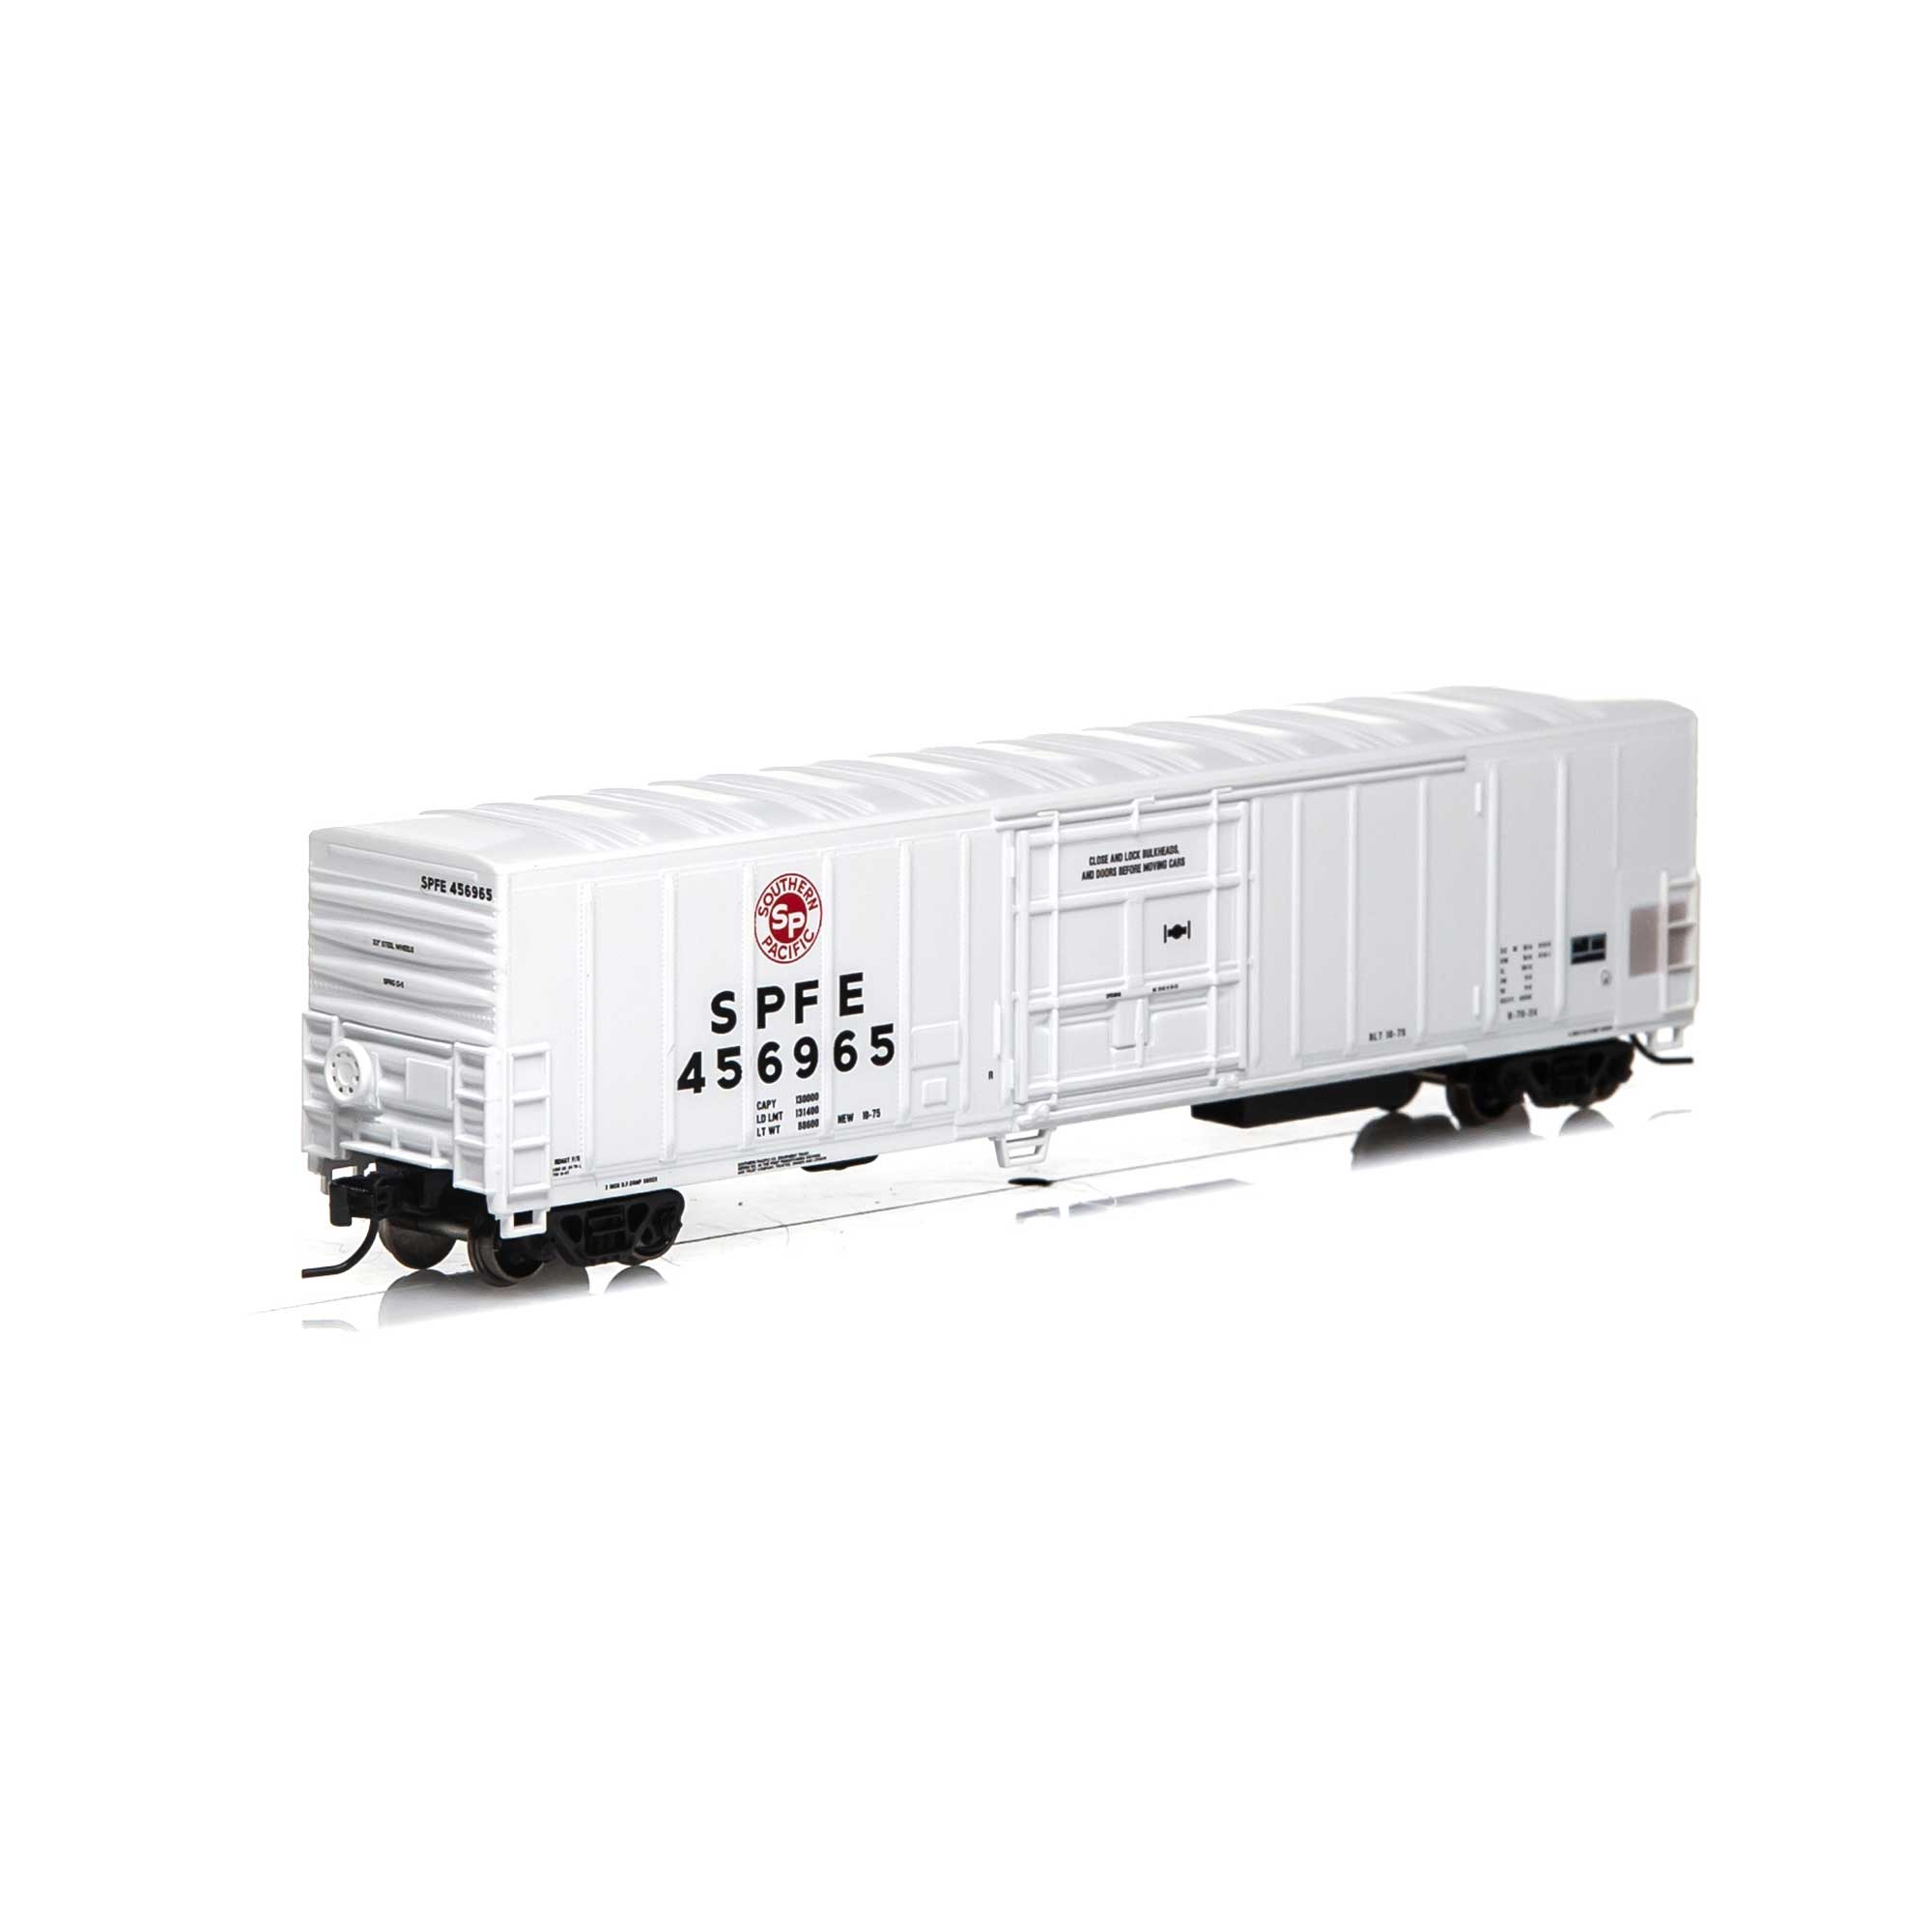 N Scale - Athearn - 25335 - Reefer, 57 Foot, Mechanical, PC&F R-70-20 - Southern Pacific - 459898